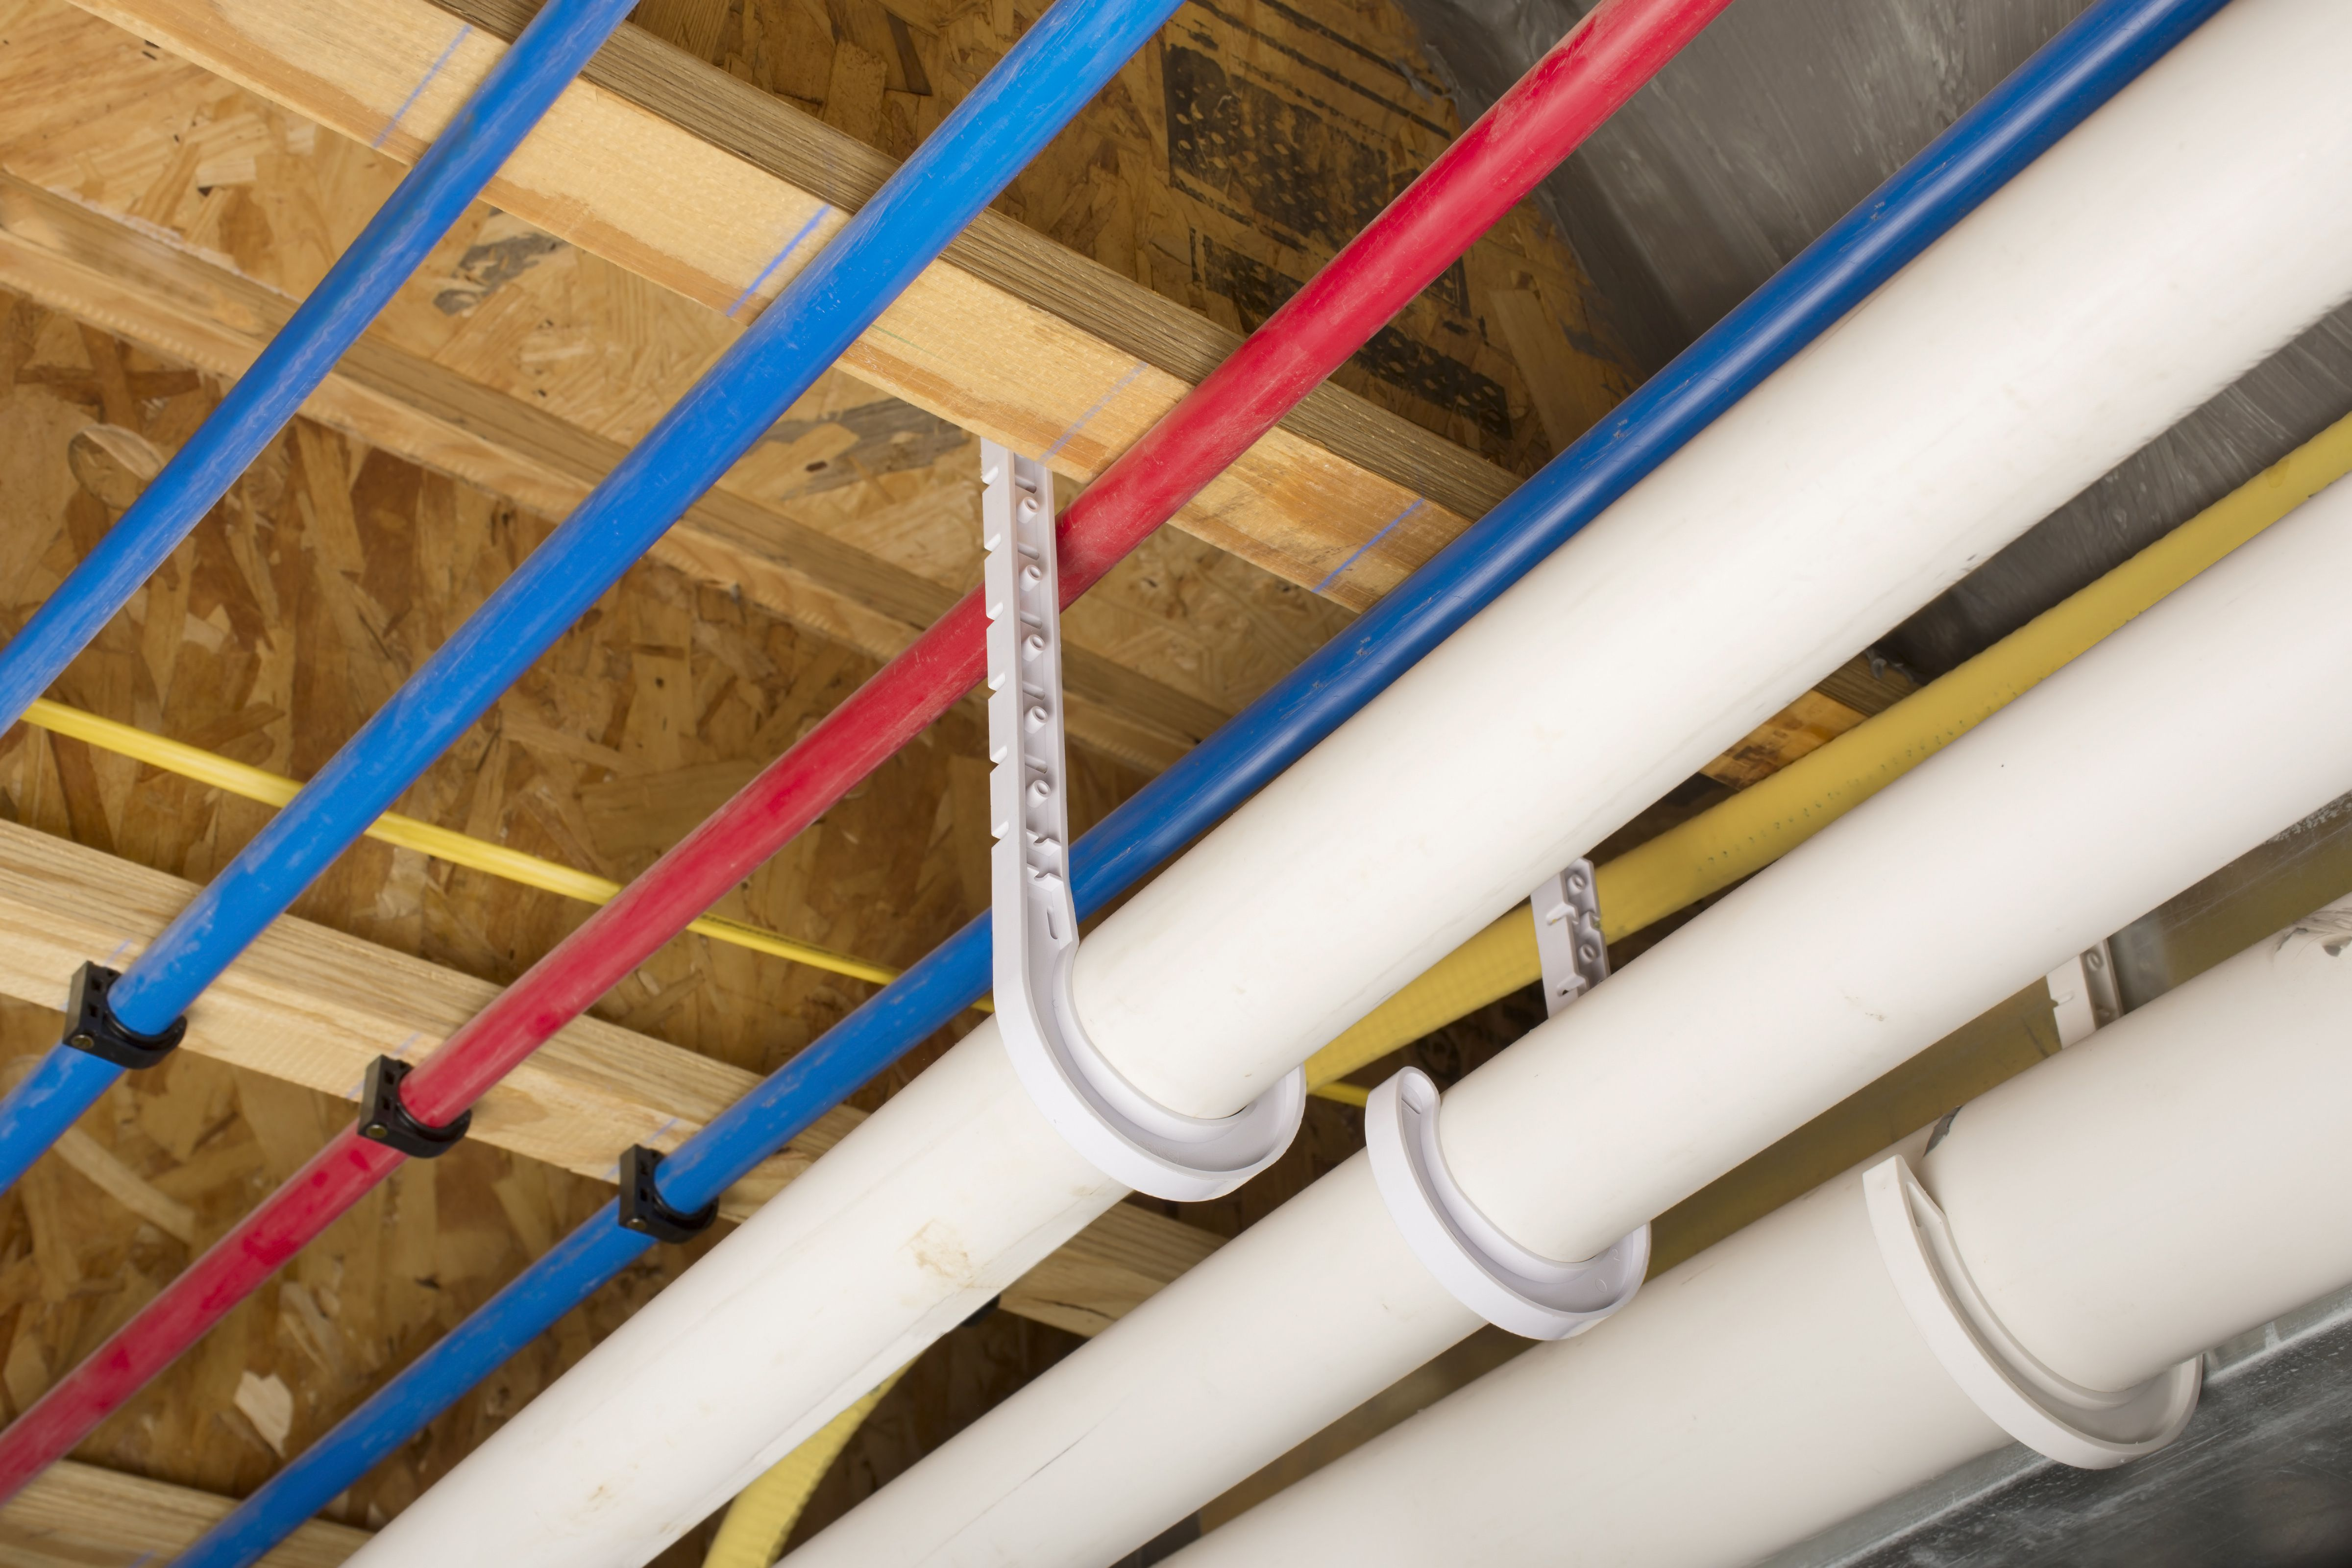 PEX and drain pipes